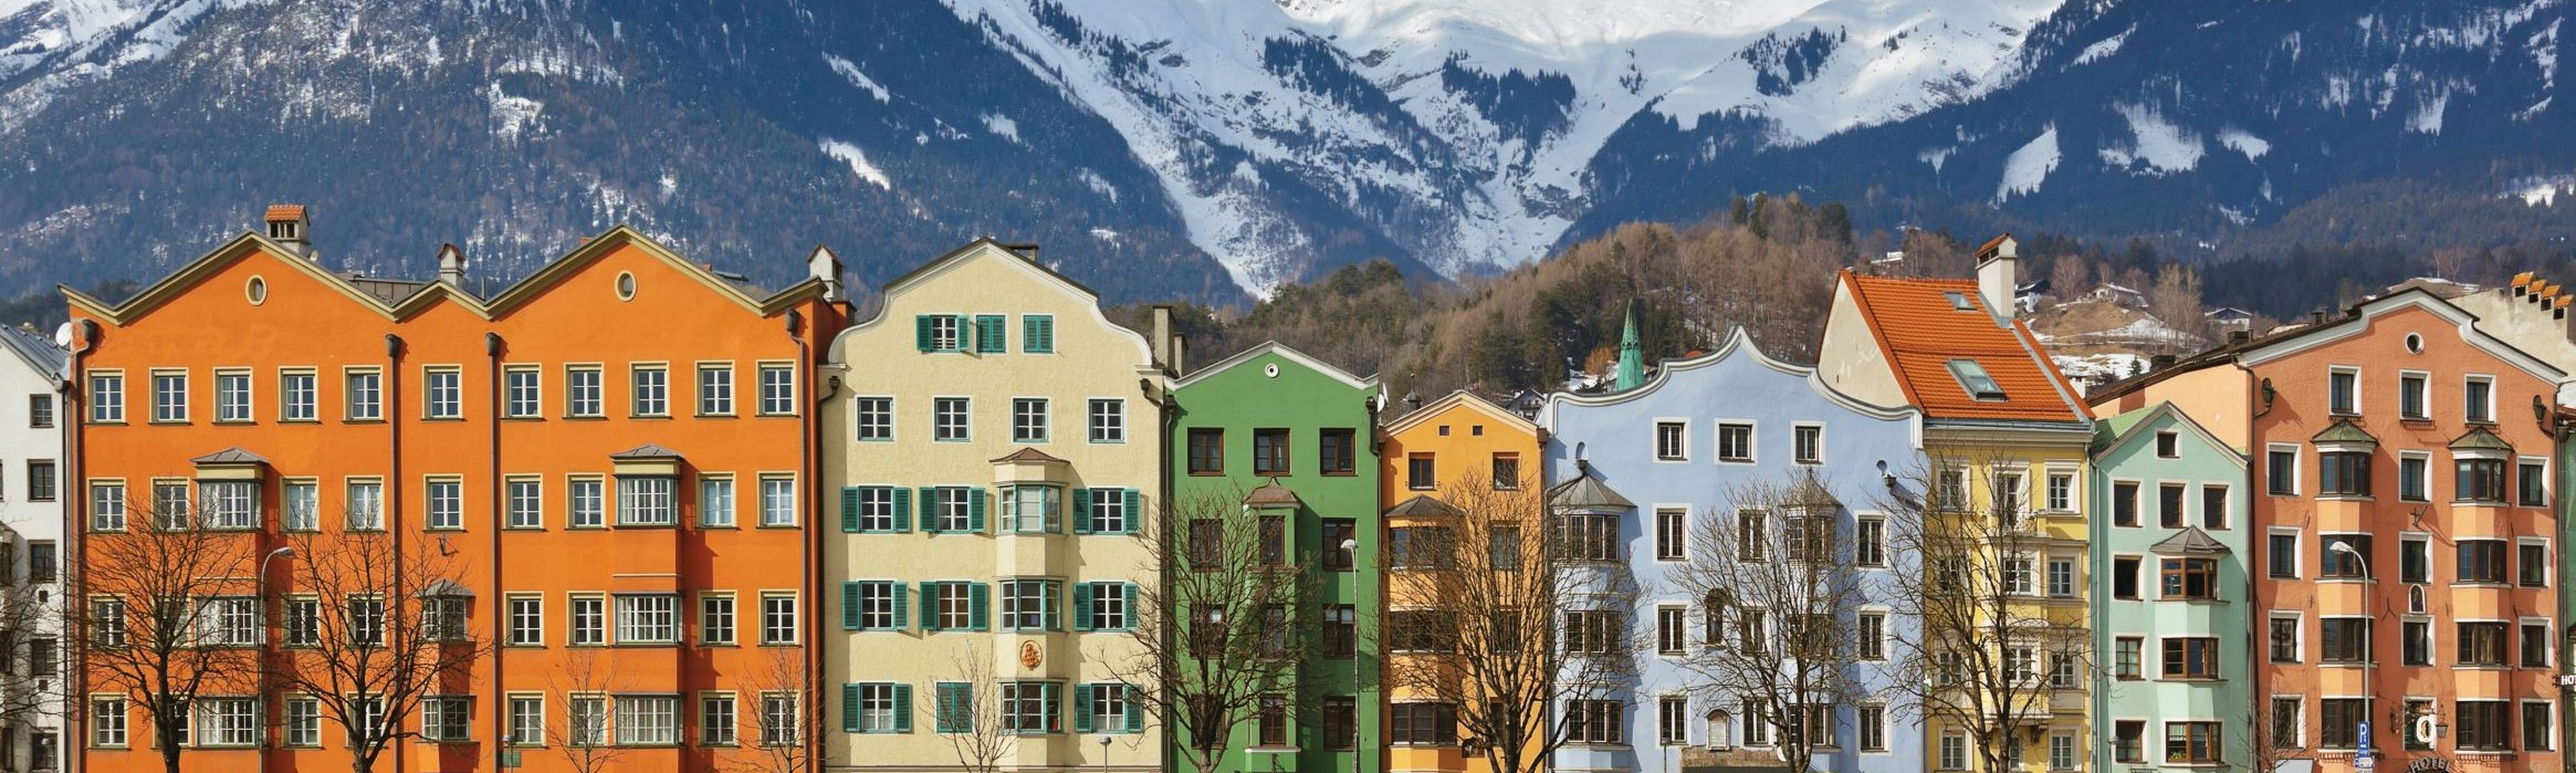 colorful buildings in front of snow capped mountains in innsbruck